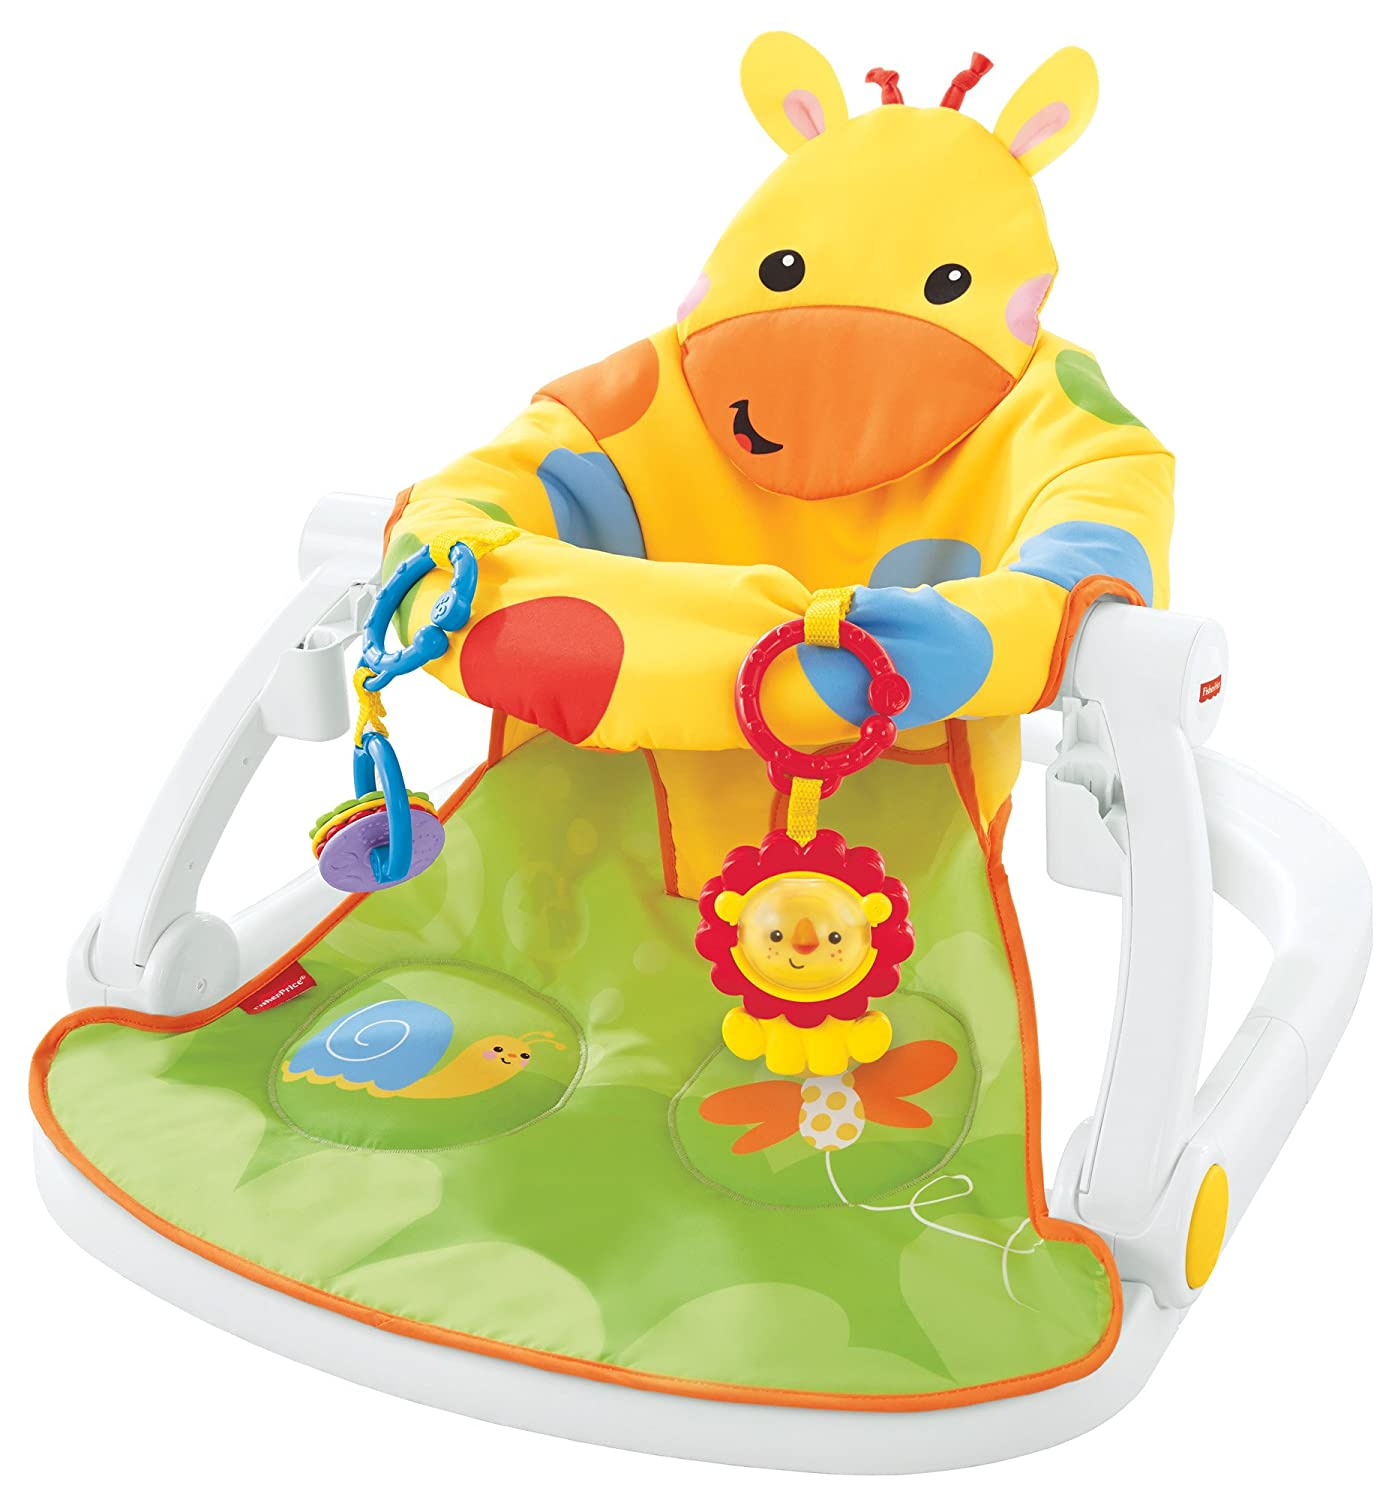 Giraffe Sit Me Up Floor Seat Fisher-Price 887961223477